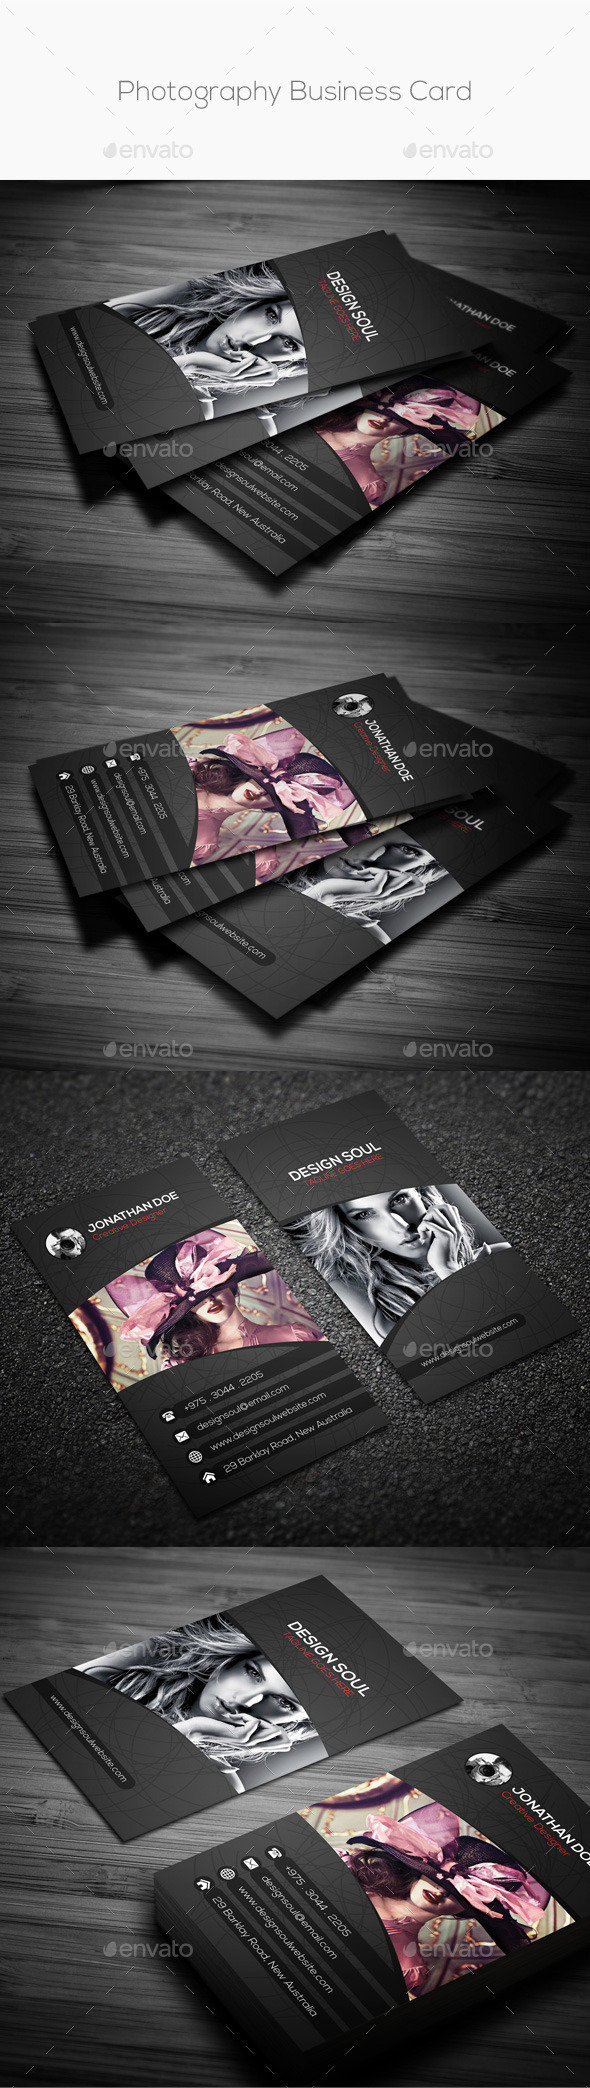 Photography Business Card - Creative Business Cards